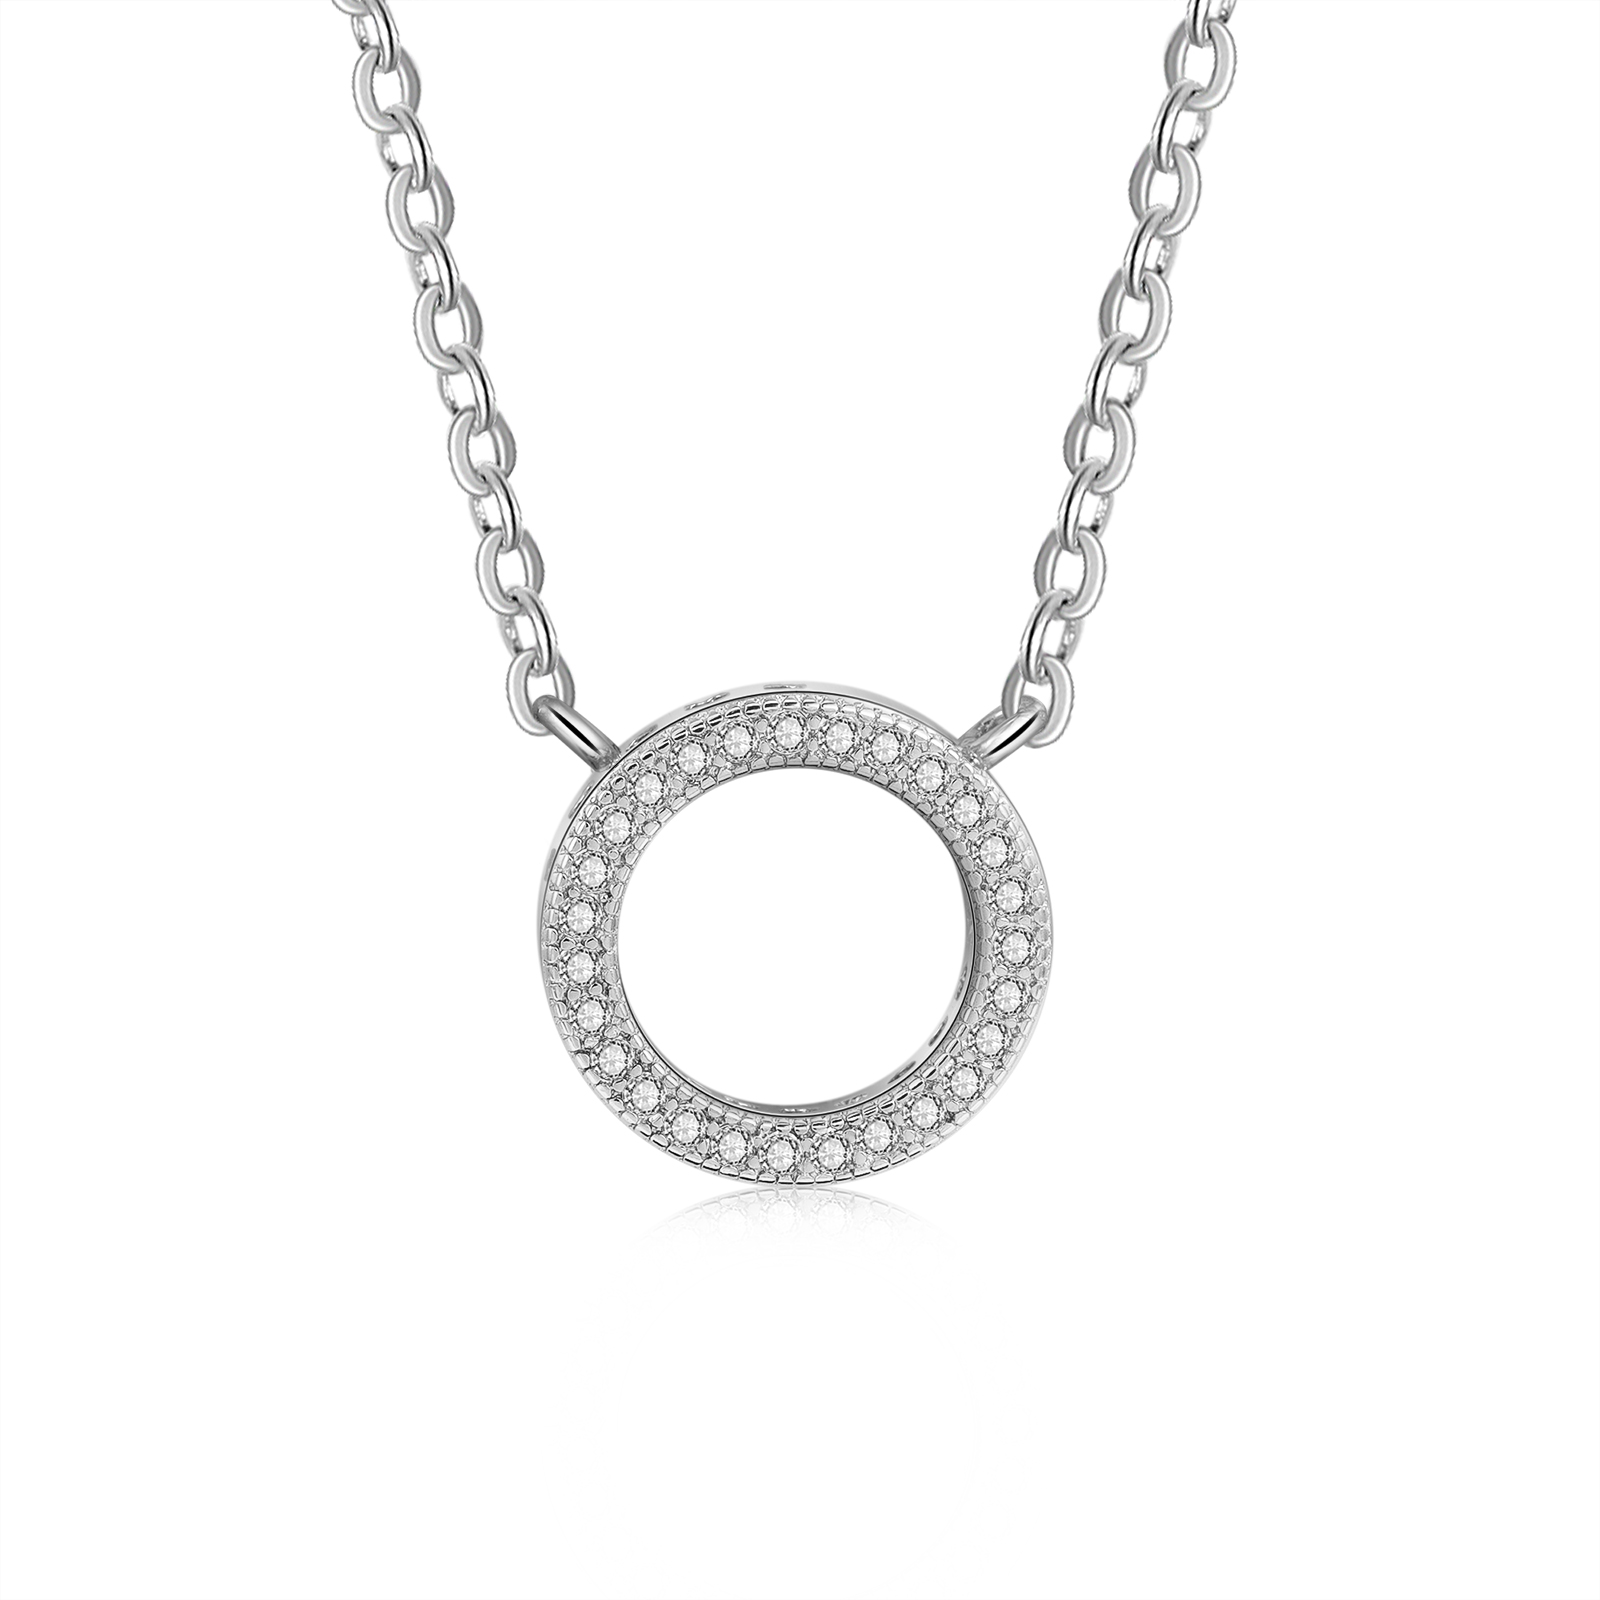 Cubic Zirconia Round Pendant 925 Sterling Silver Pendants Necklaces For Women